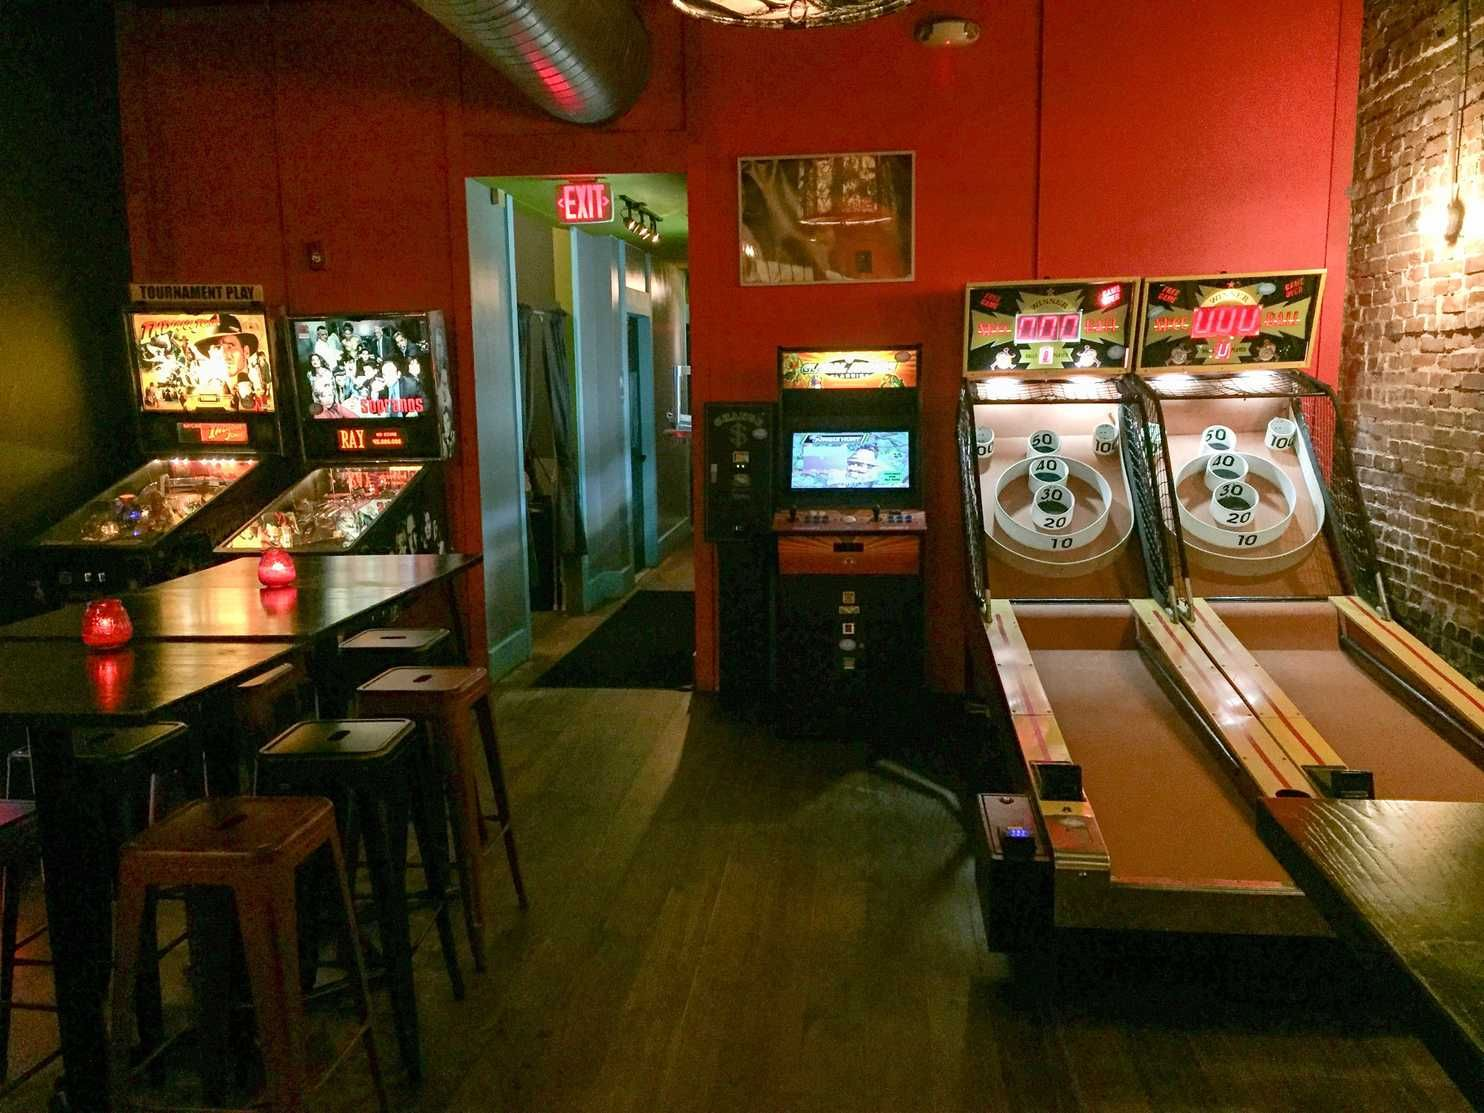 What Beats The Usual Happy Hour Bars With Skee Ball Arcade And Virtual Reality Games Arcade Bar Arcade Game Room Arcade Room